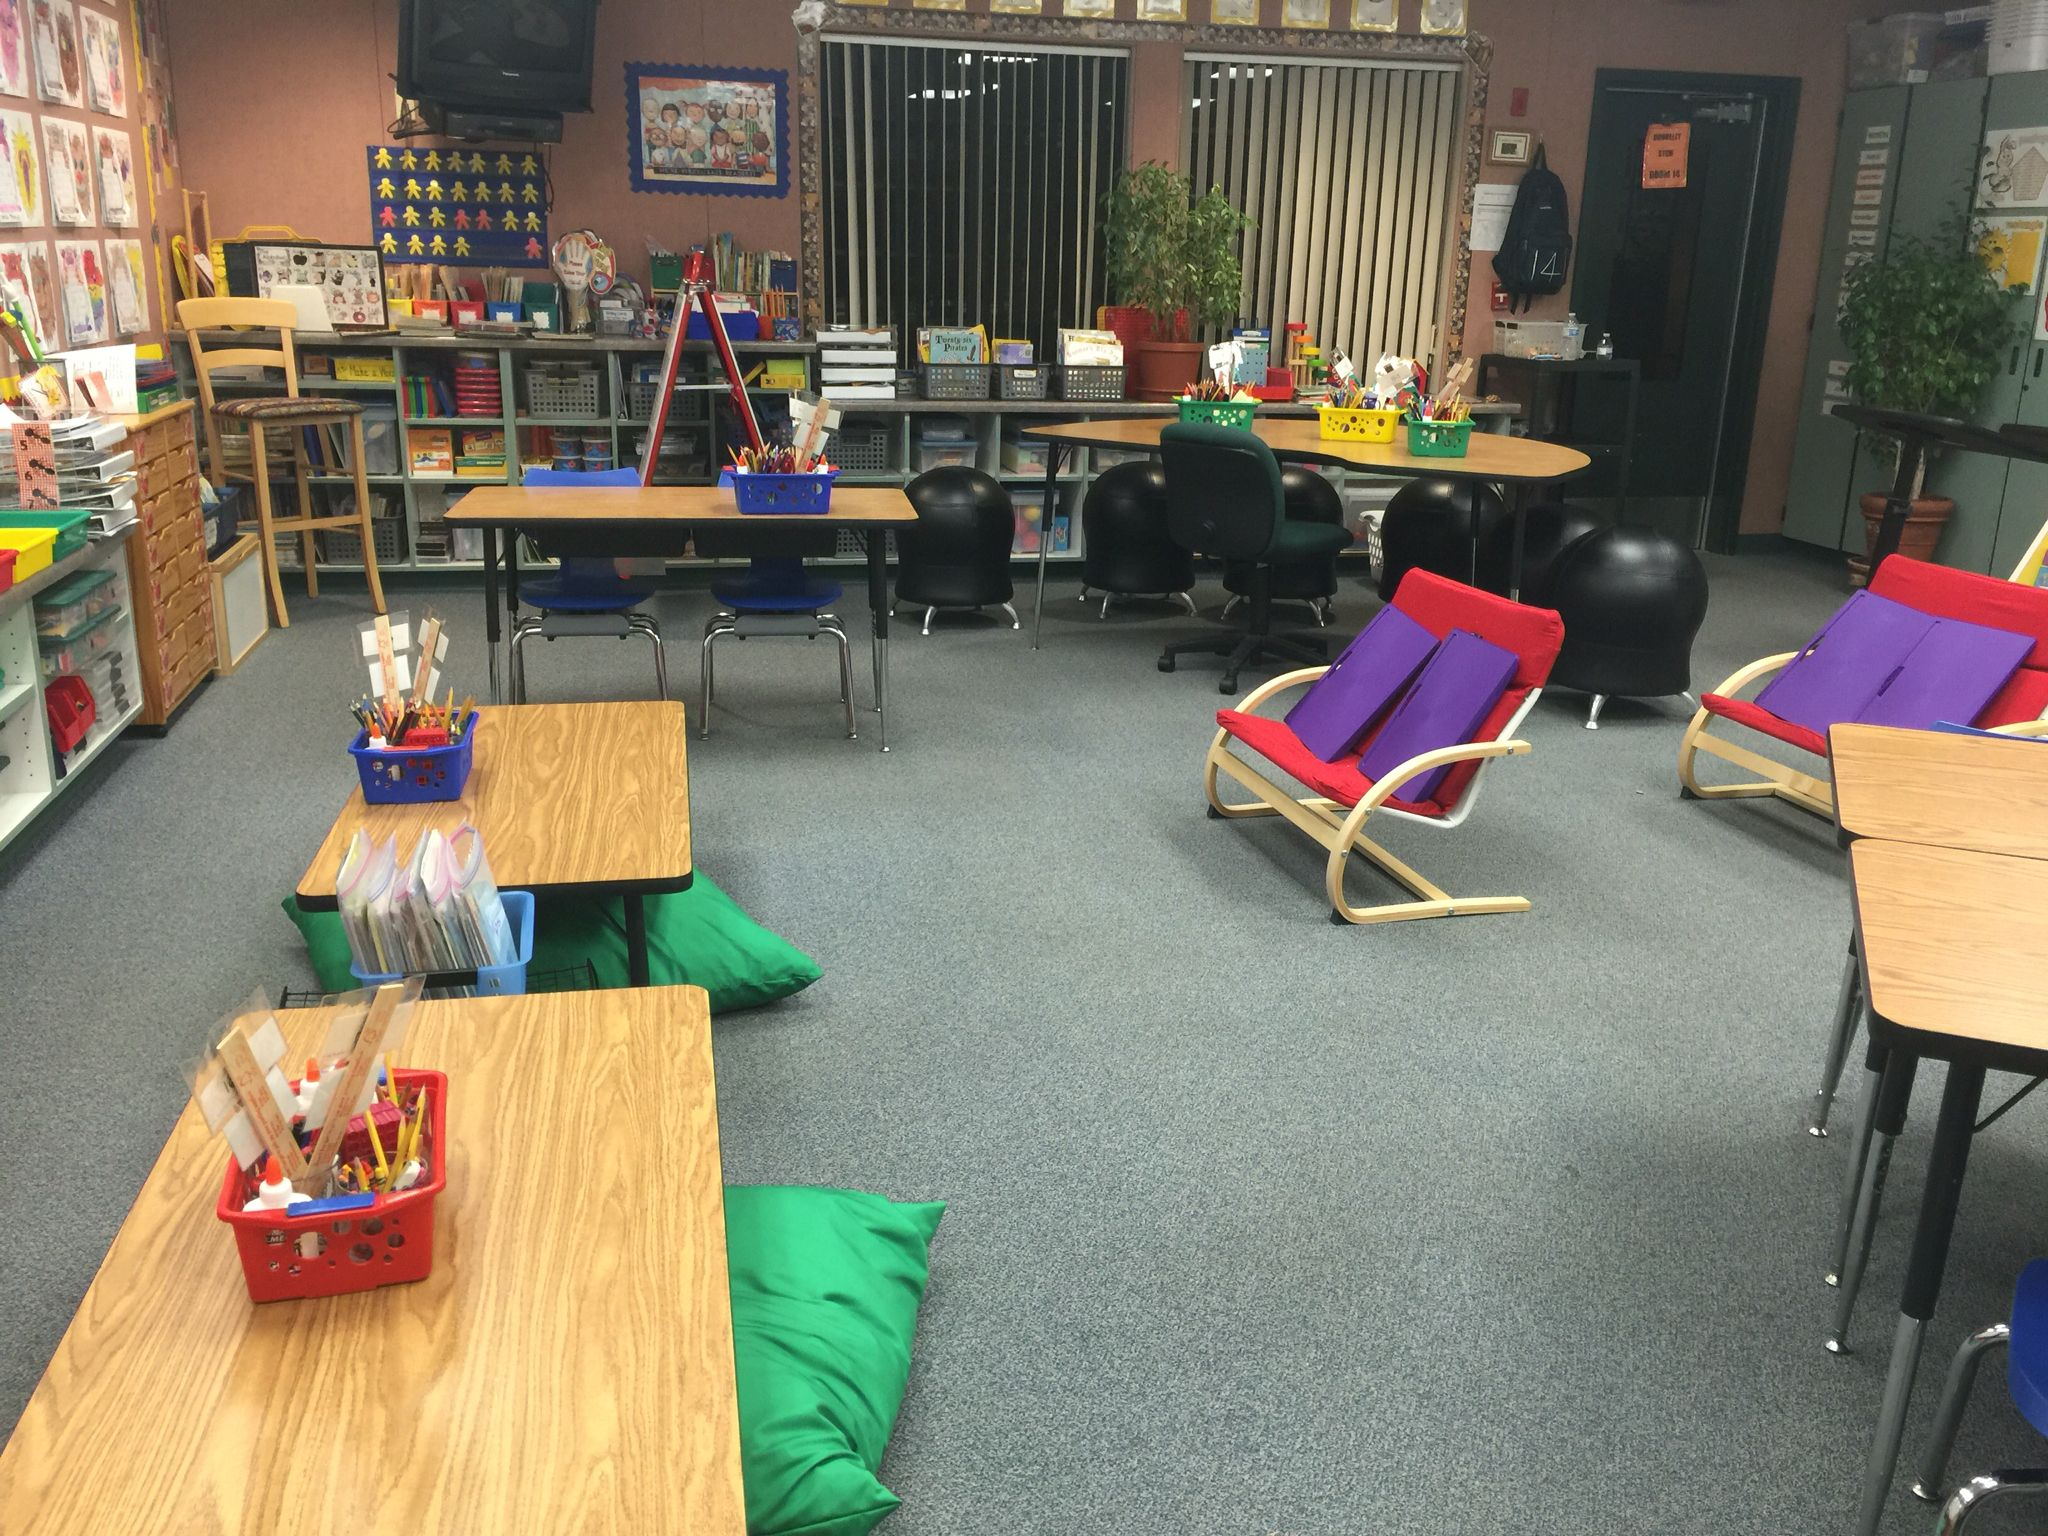 Another view of my class Short desks with floor pillows